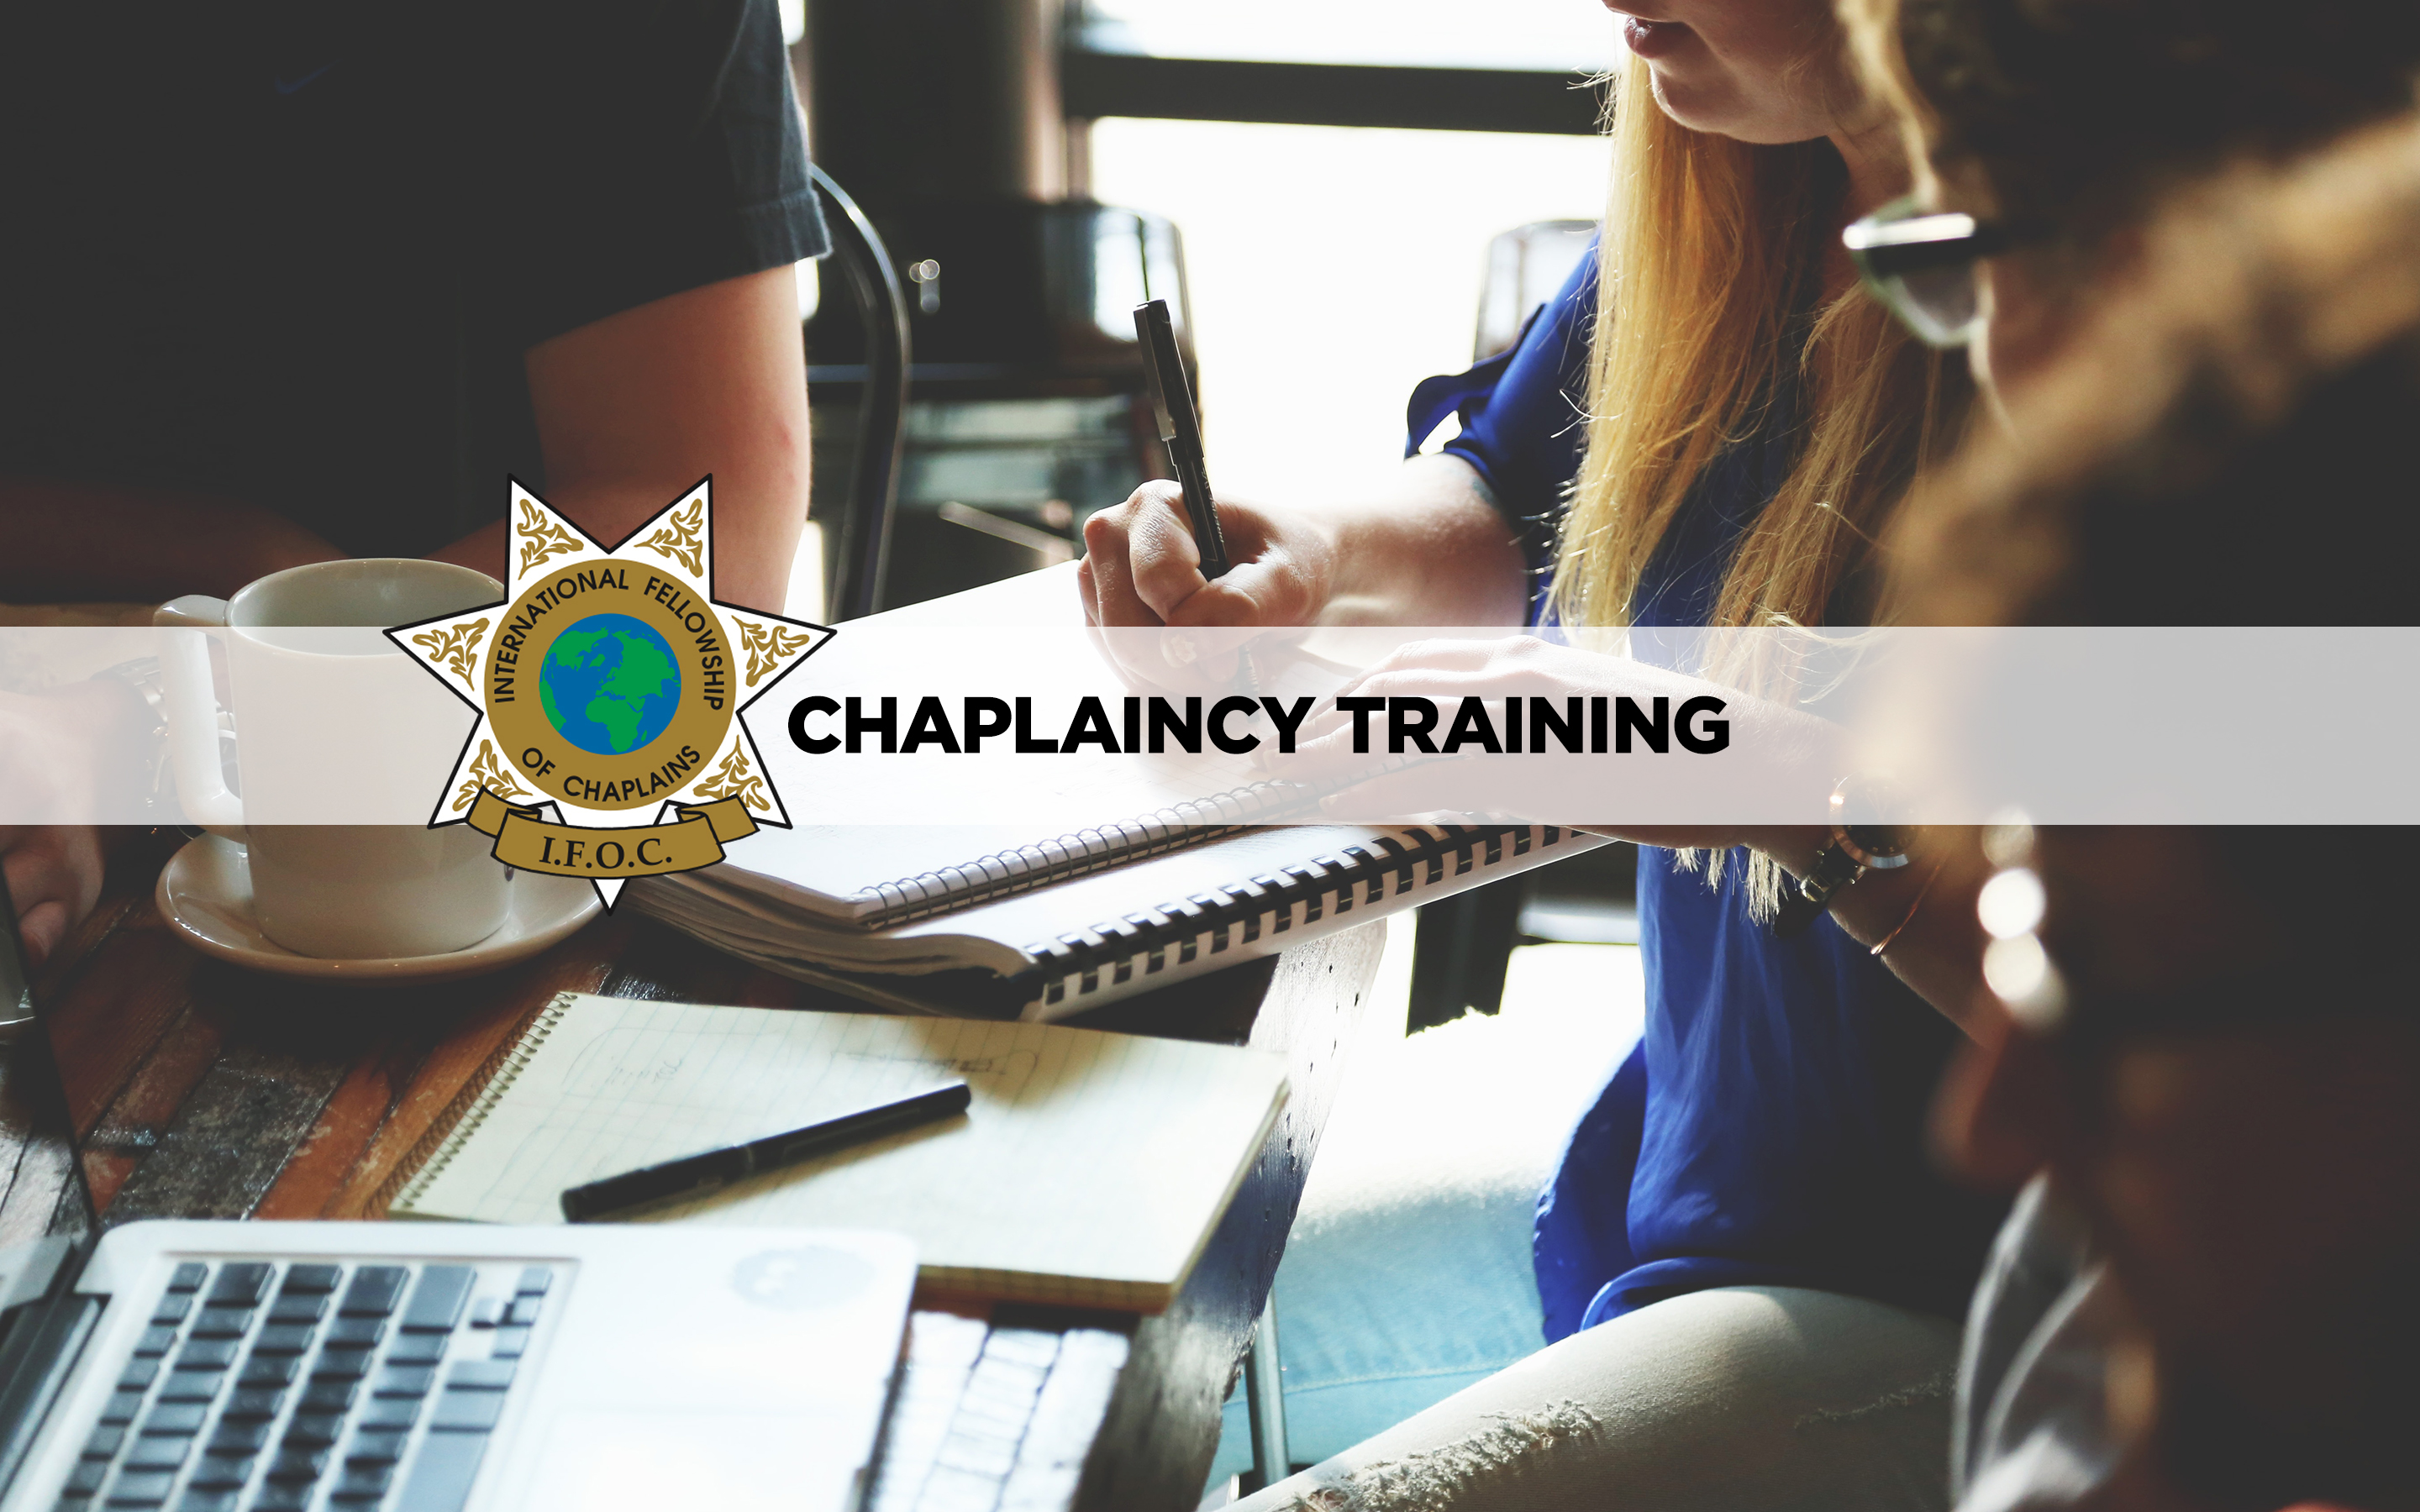 Image: Chaplaincy Training